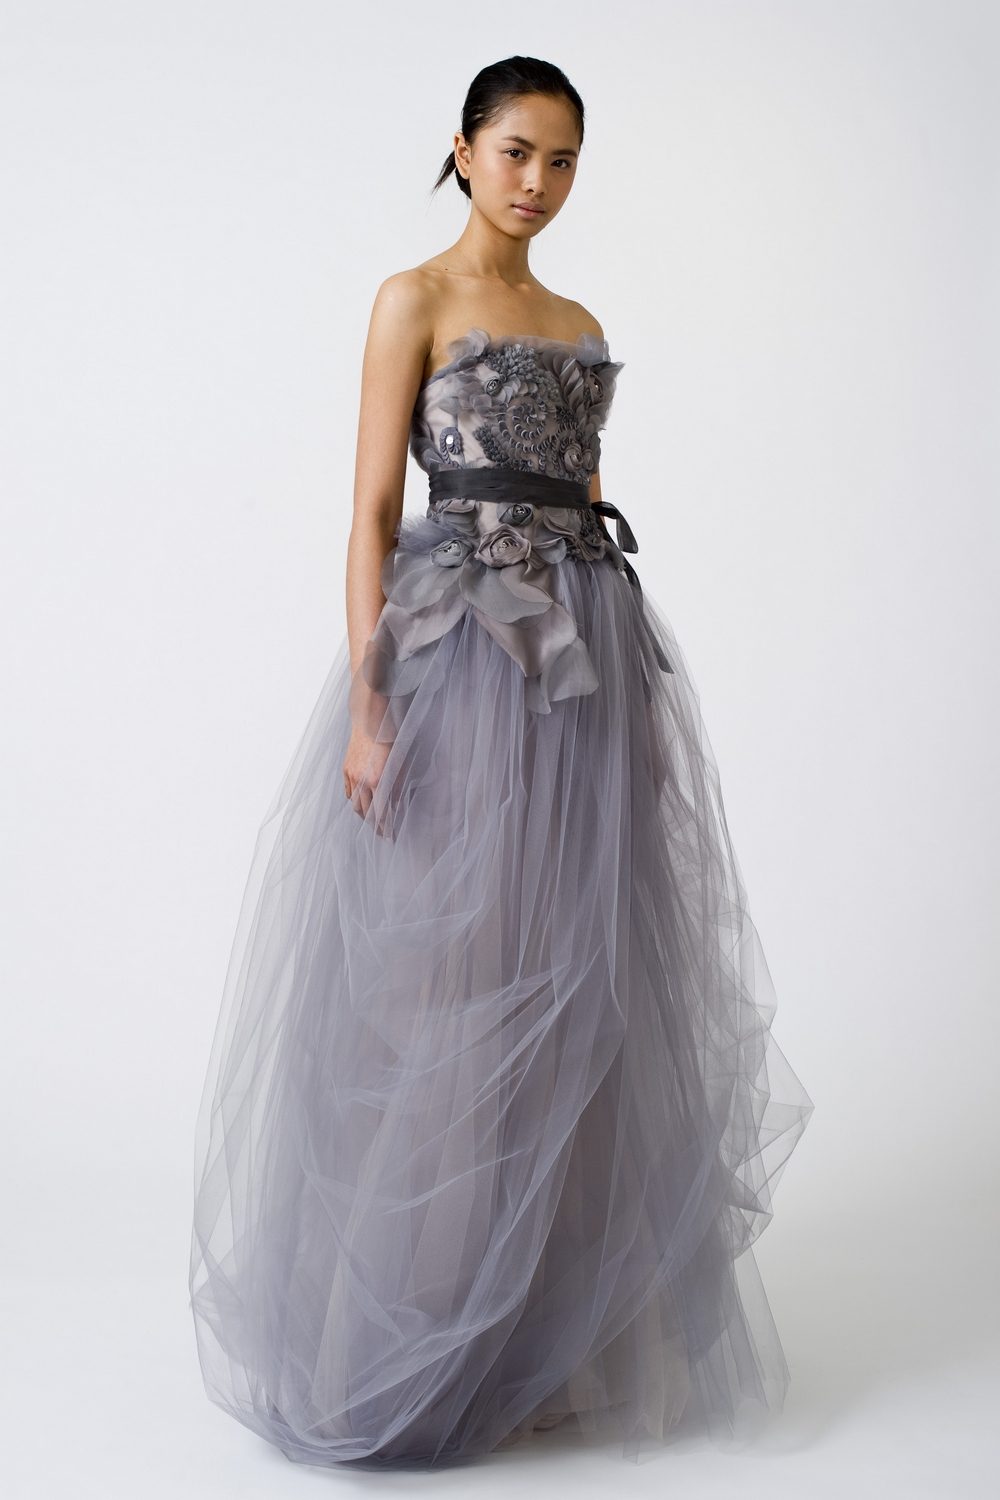 4-spring-2011-vera-wang-wedding-dress-color-lilac-tulle-beading.original